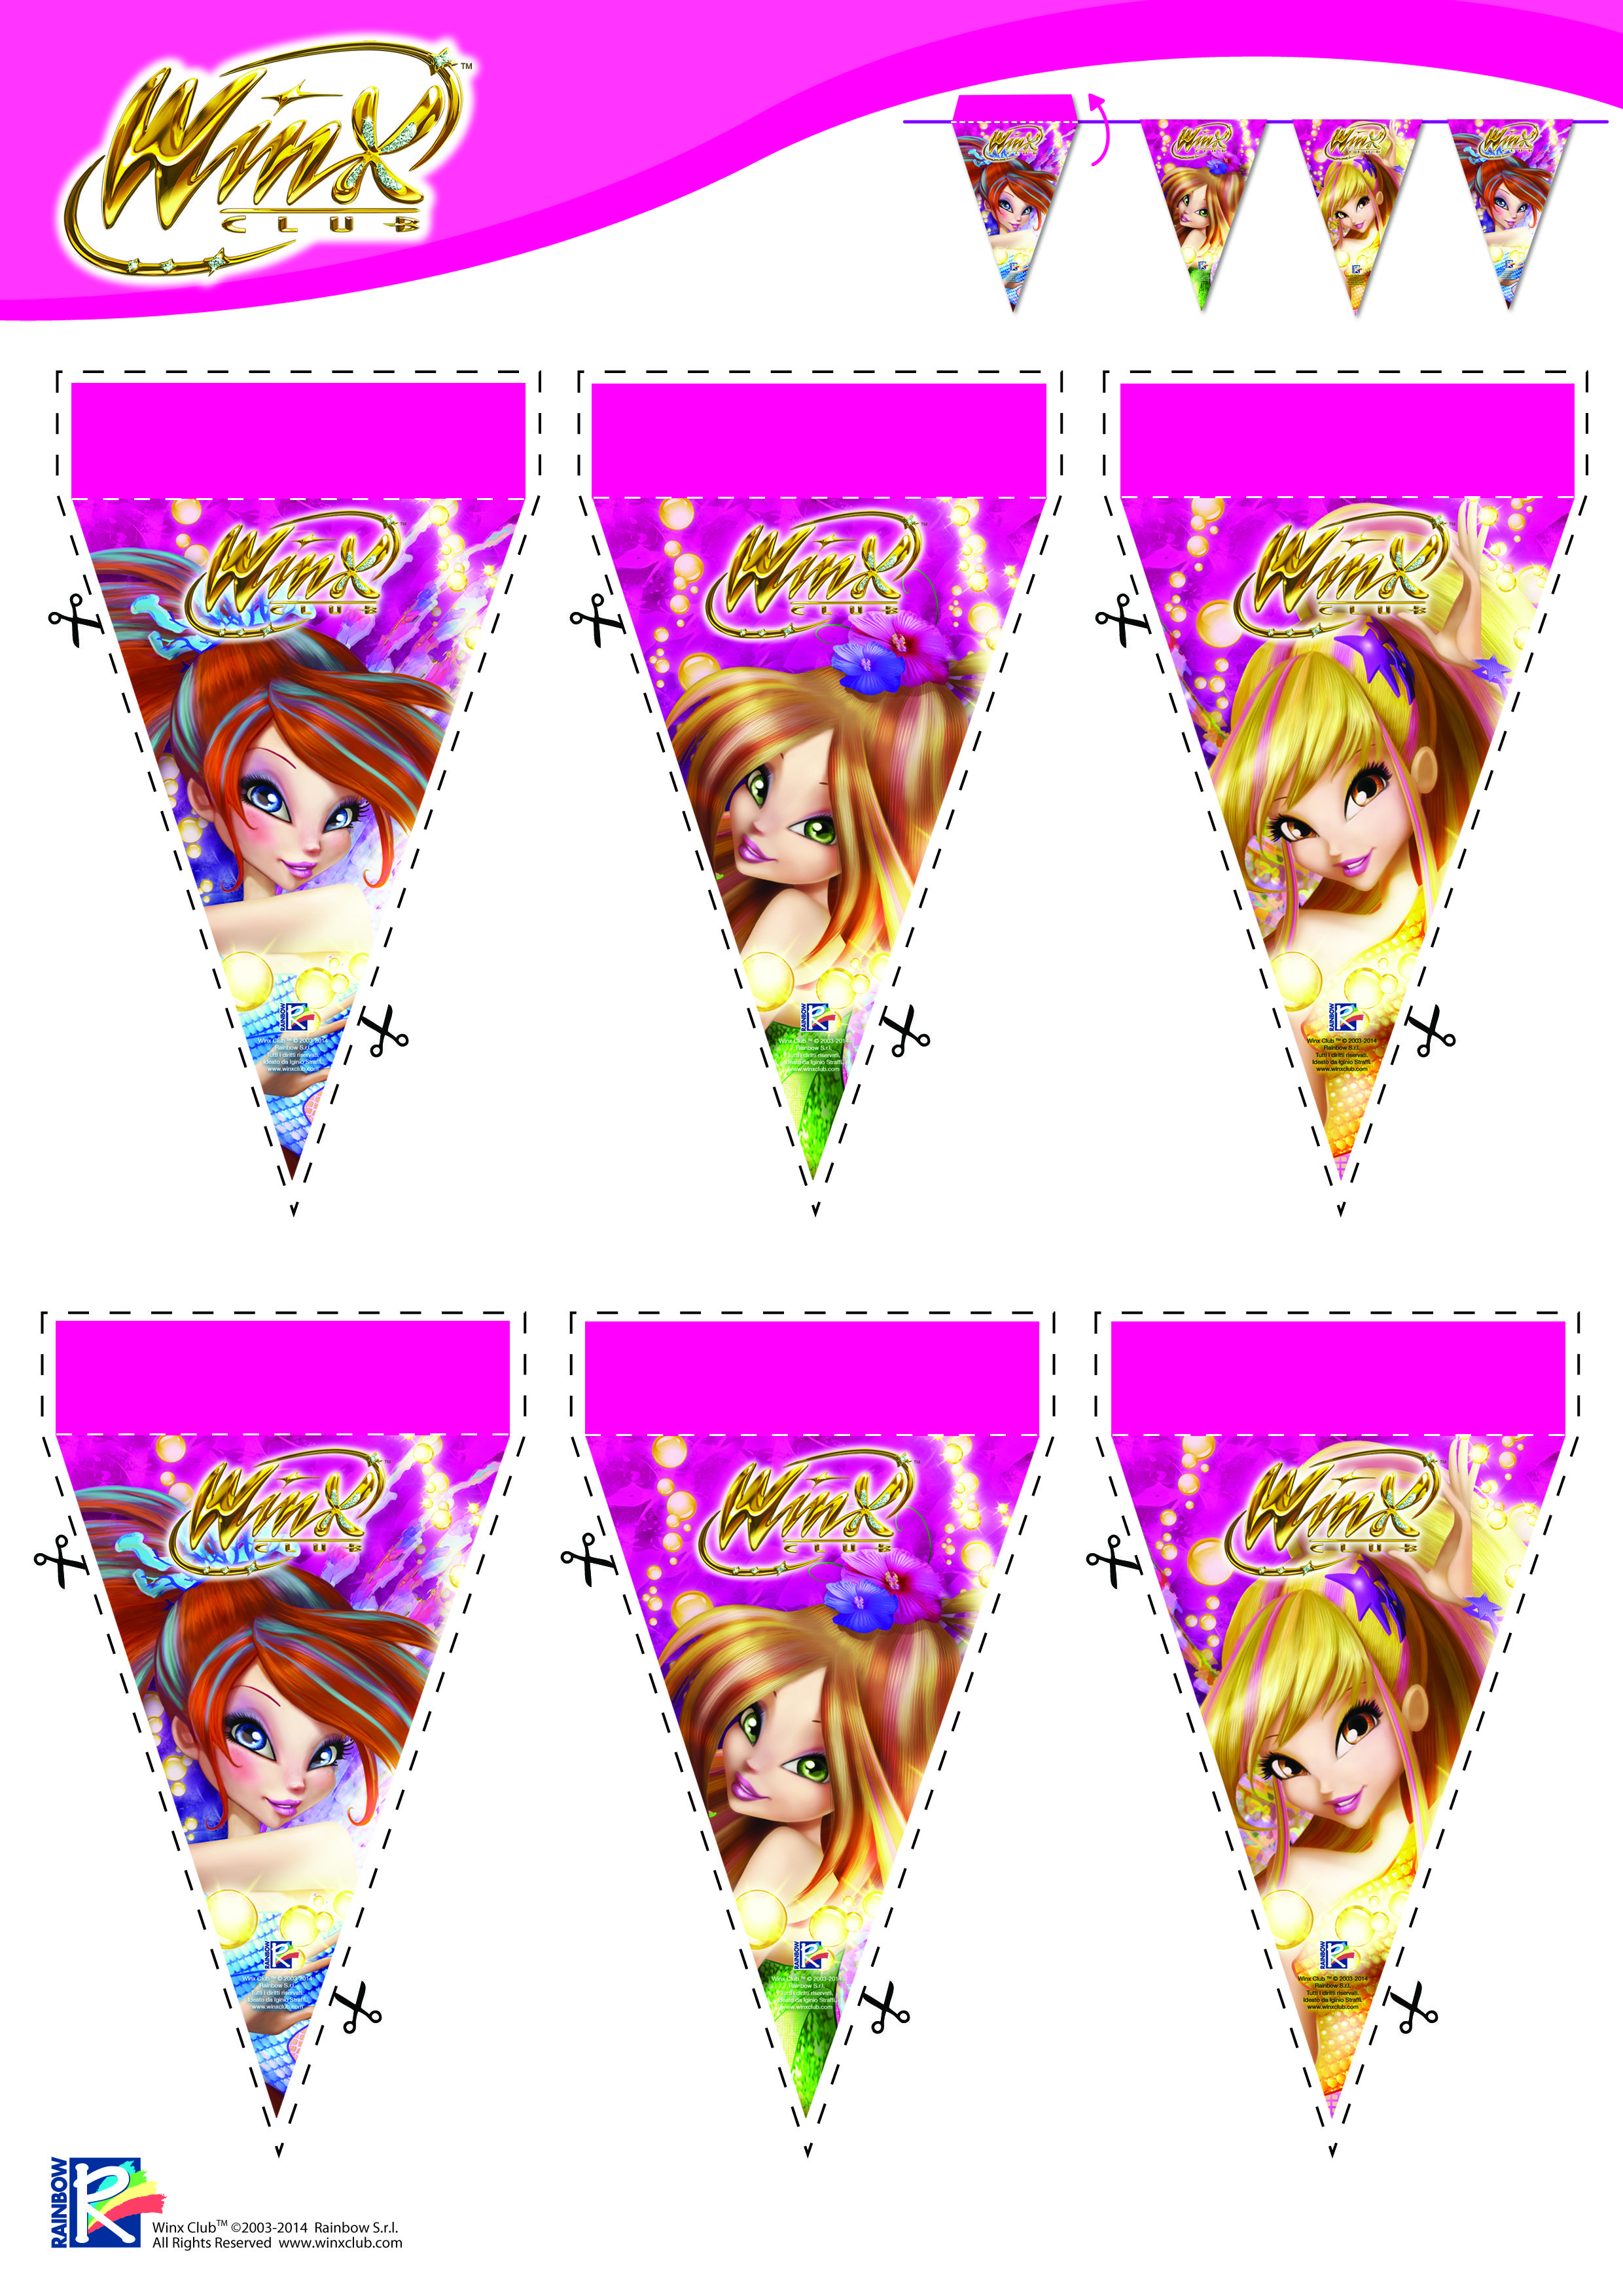 Decoration Stuff For Party Party Decorations Winx Club Printables Pinterest Activities